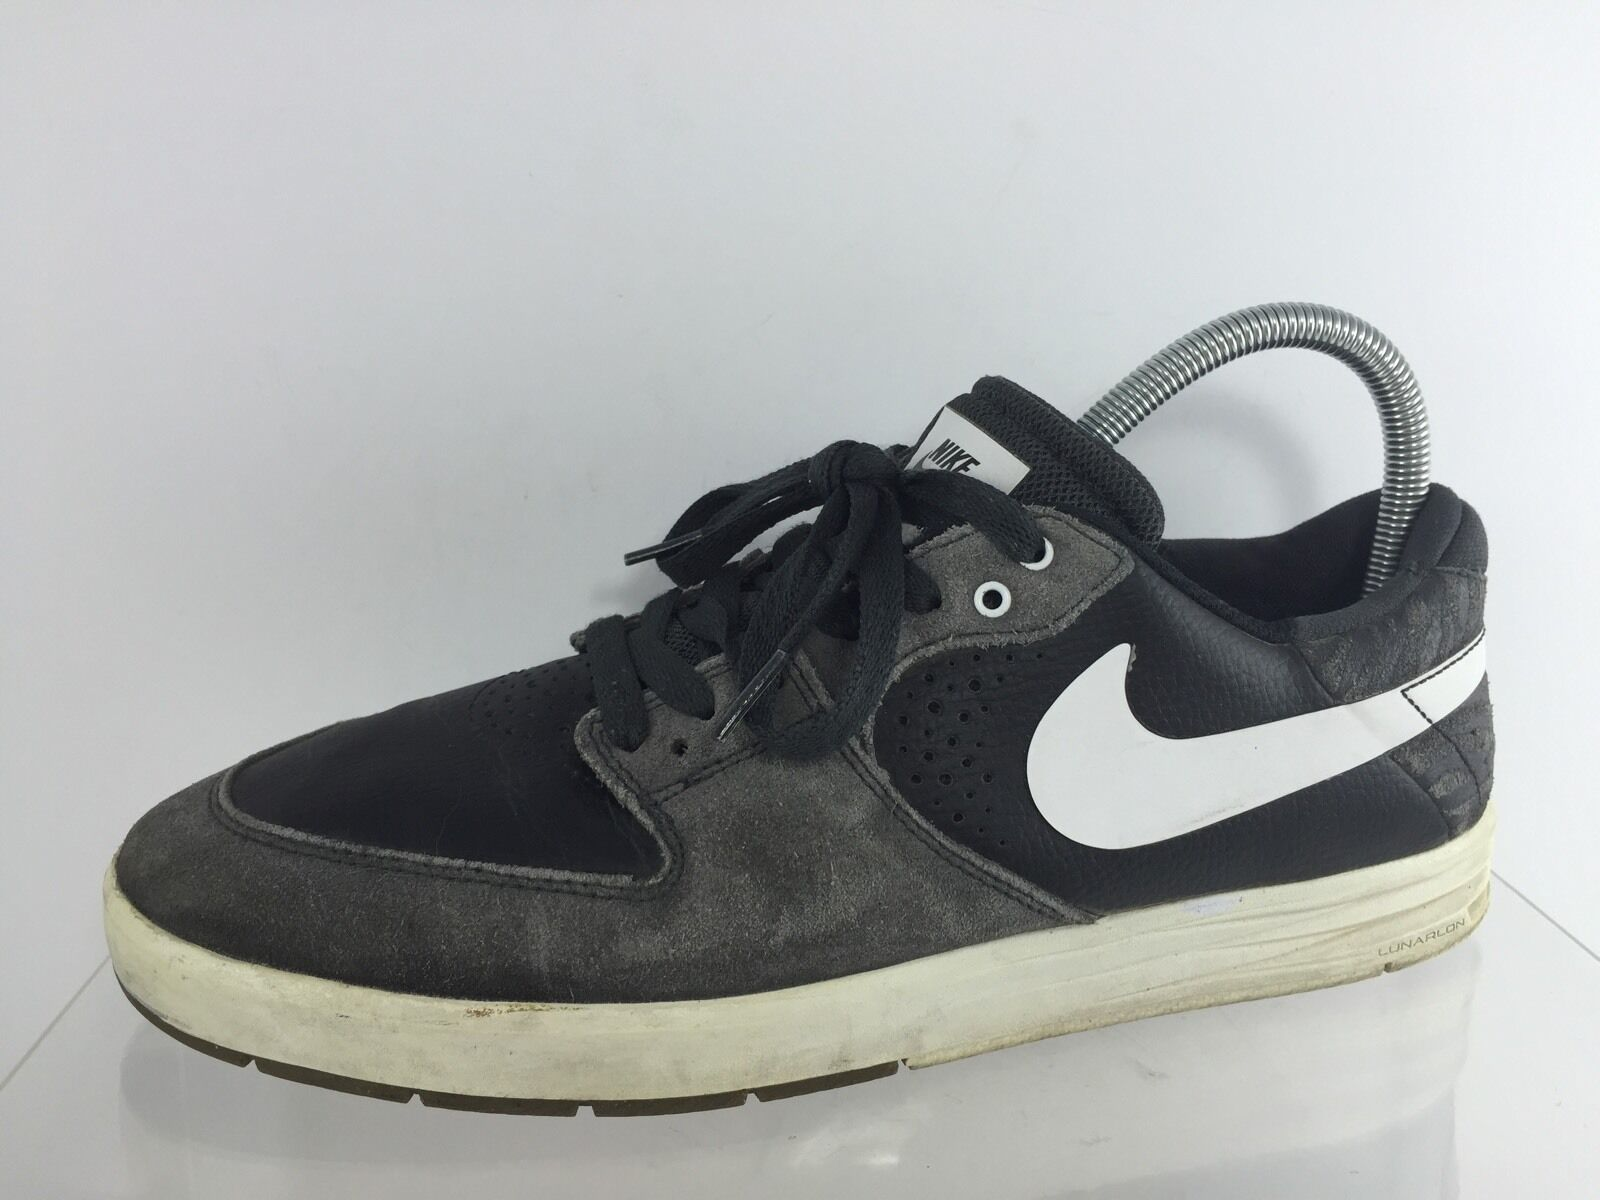 Nike SB Mens Black Shoes 10 Brand discount